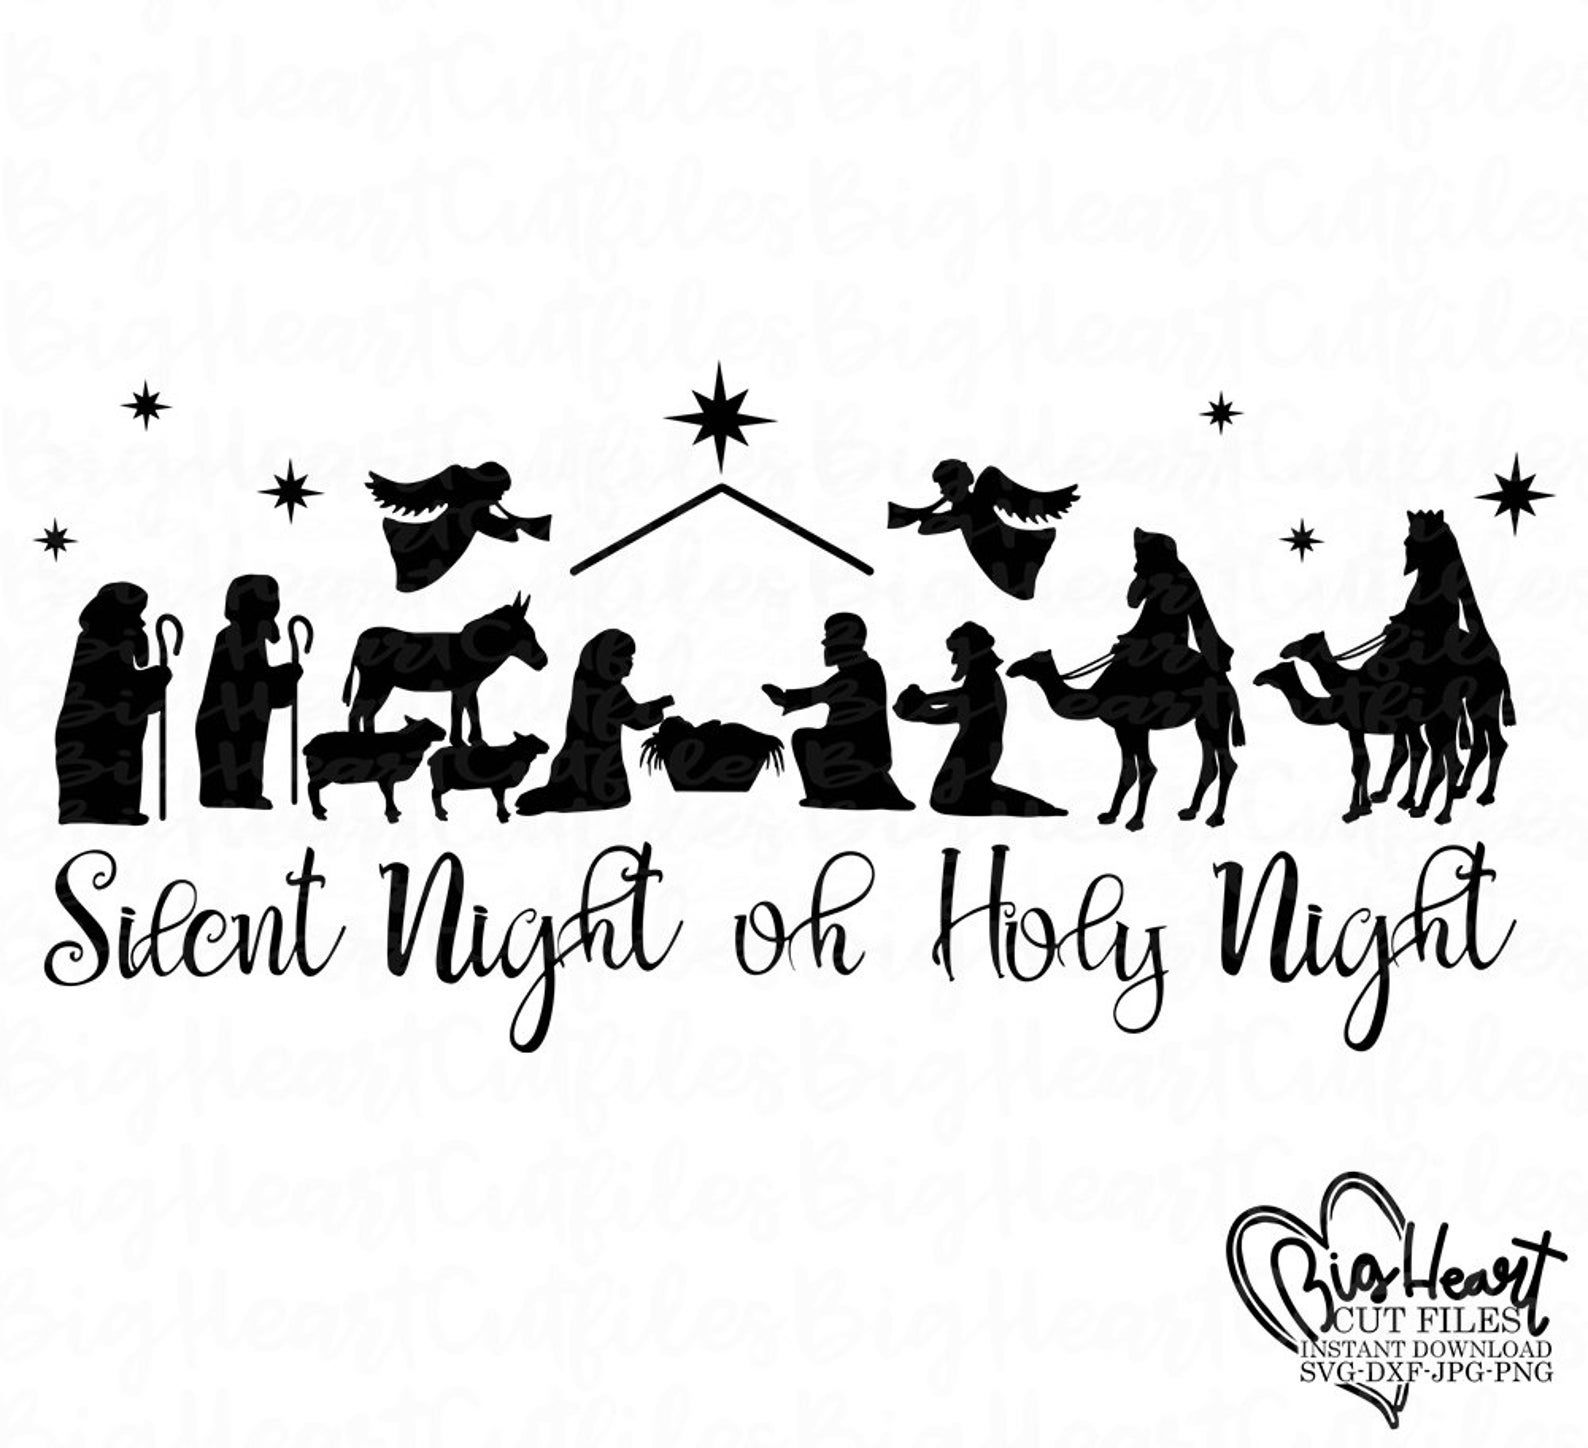 Nativity Scene Svg,Christmas Nativity Svg Silhouette,Holy